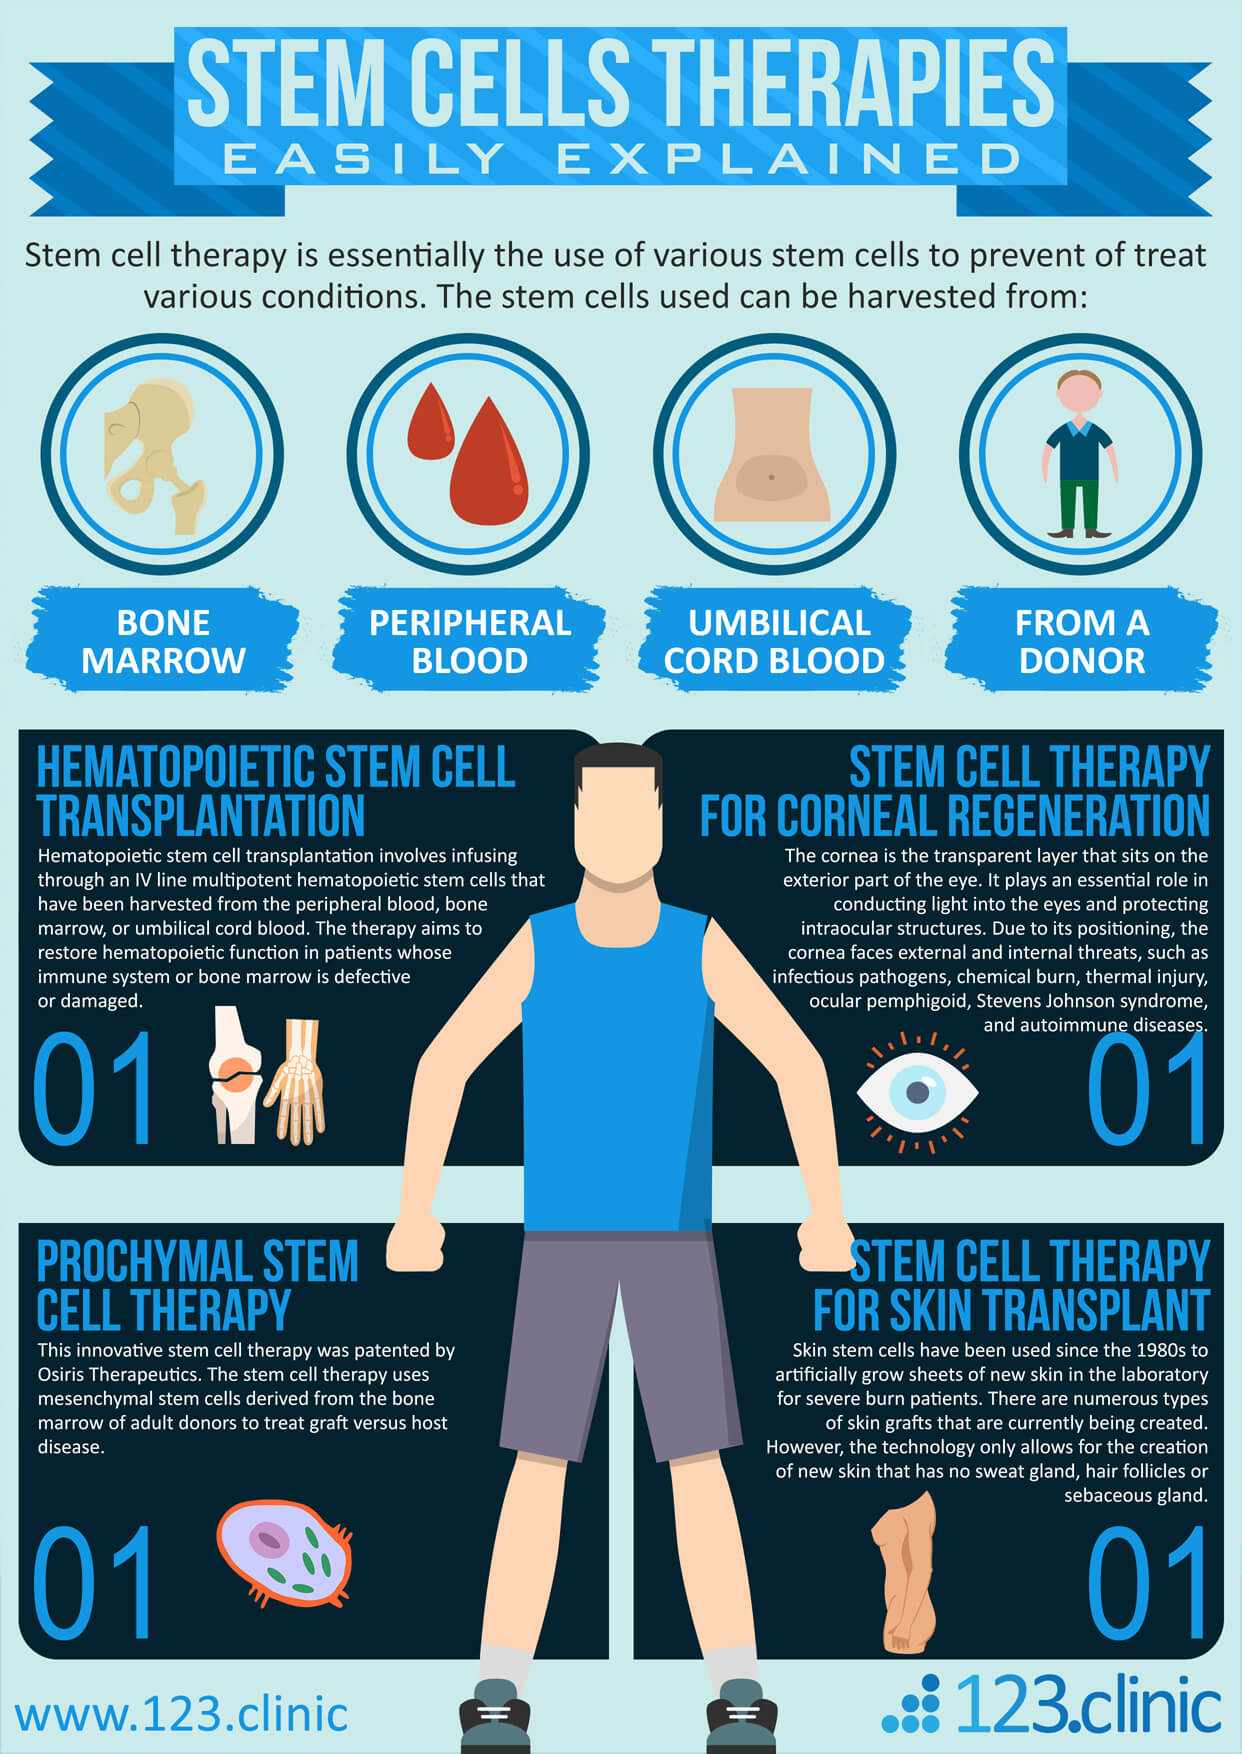 Stem_Cells_Therapies_Easily_Explained_infographic